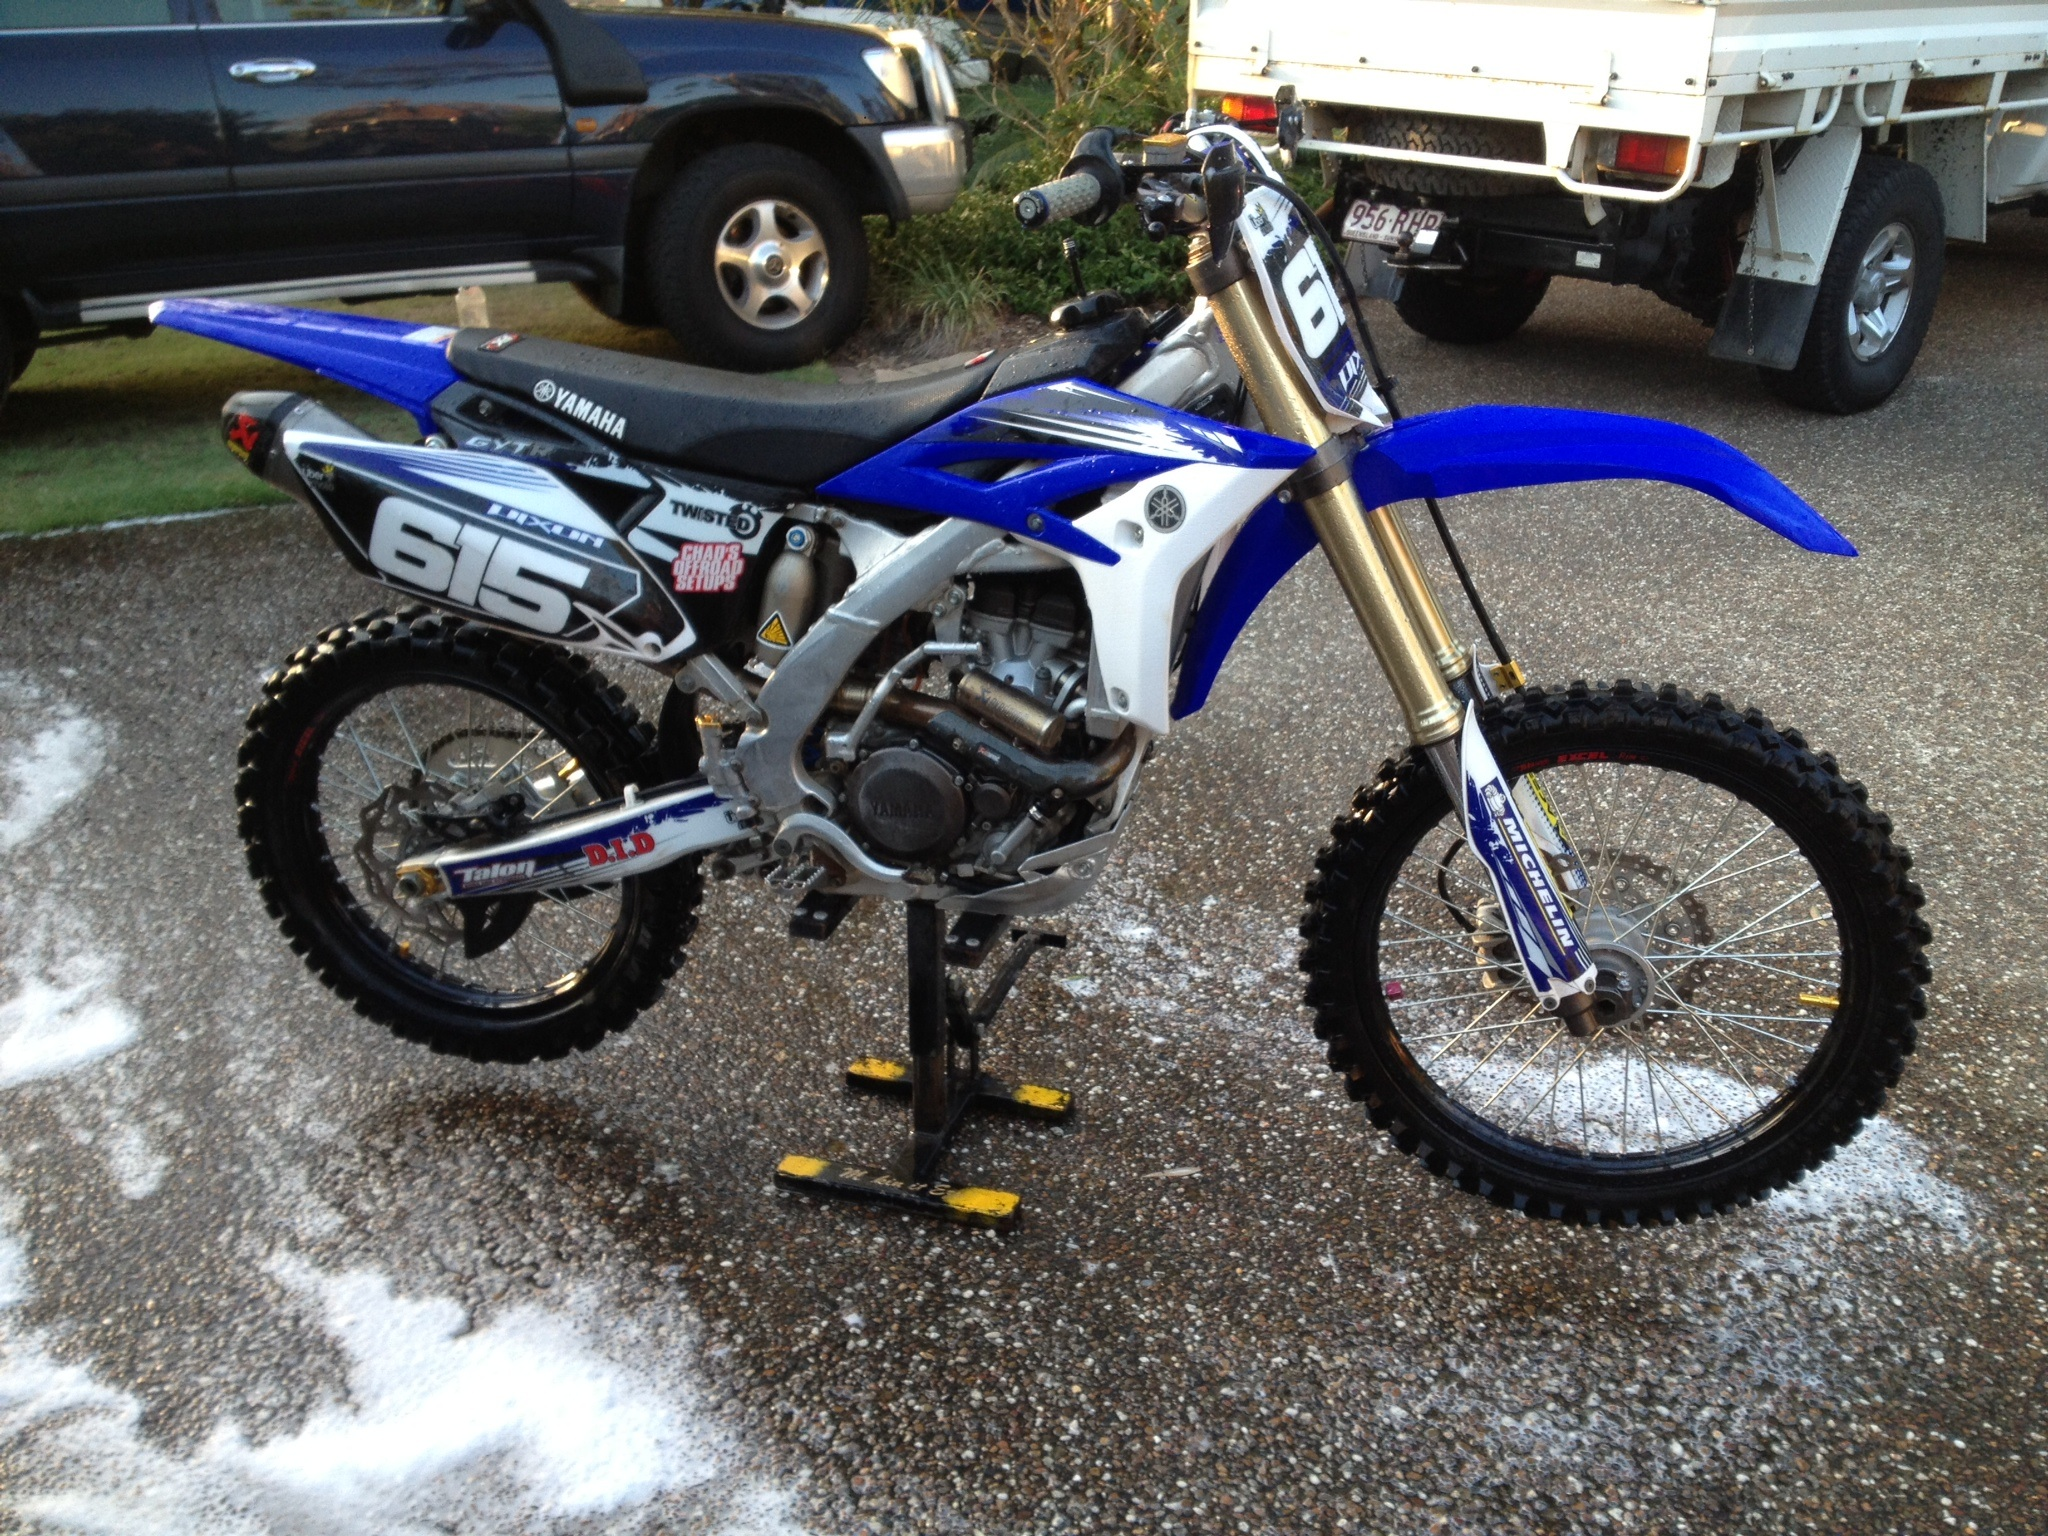 2012 yamaha yz250f my12 for sale or swap qld gold coast for Yamaha yz250f for sale